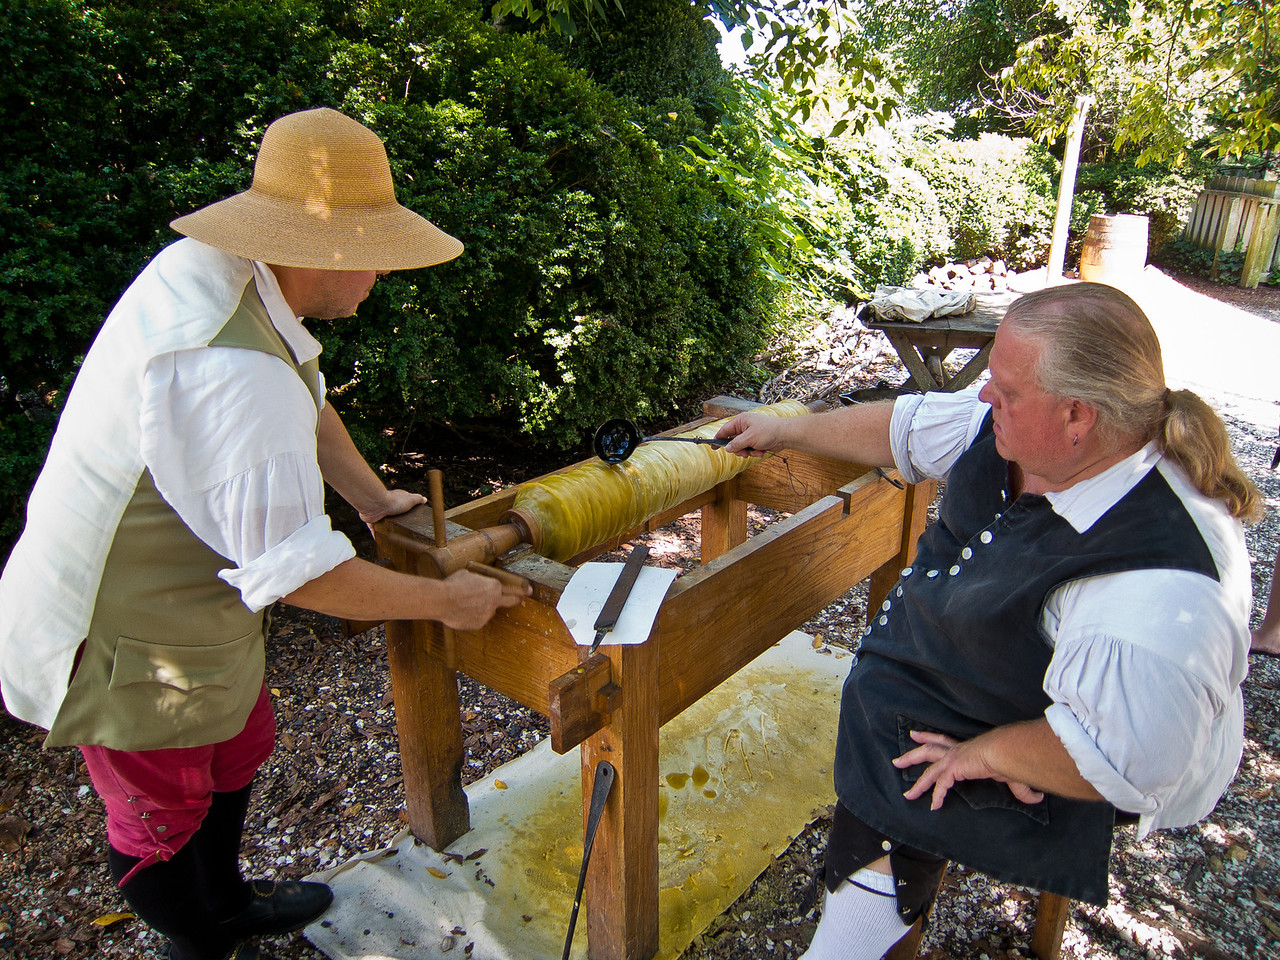 Making a Canon at Colonial Williamsburg - Pouring wax that will create a mold for the barrel.